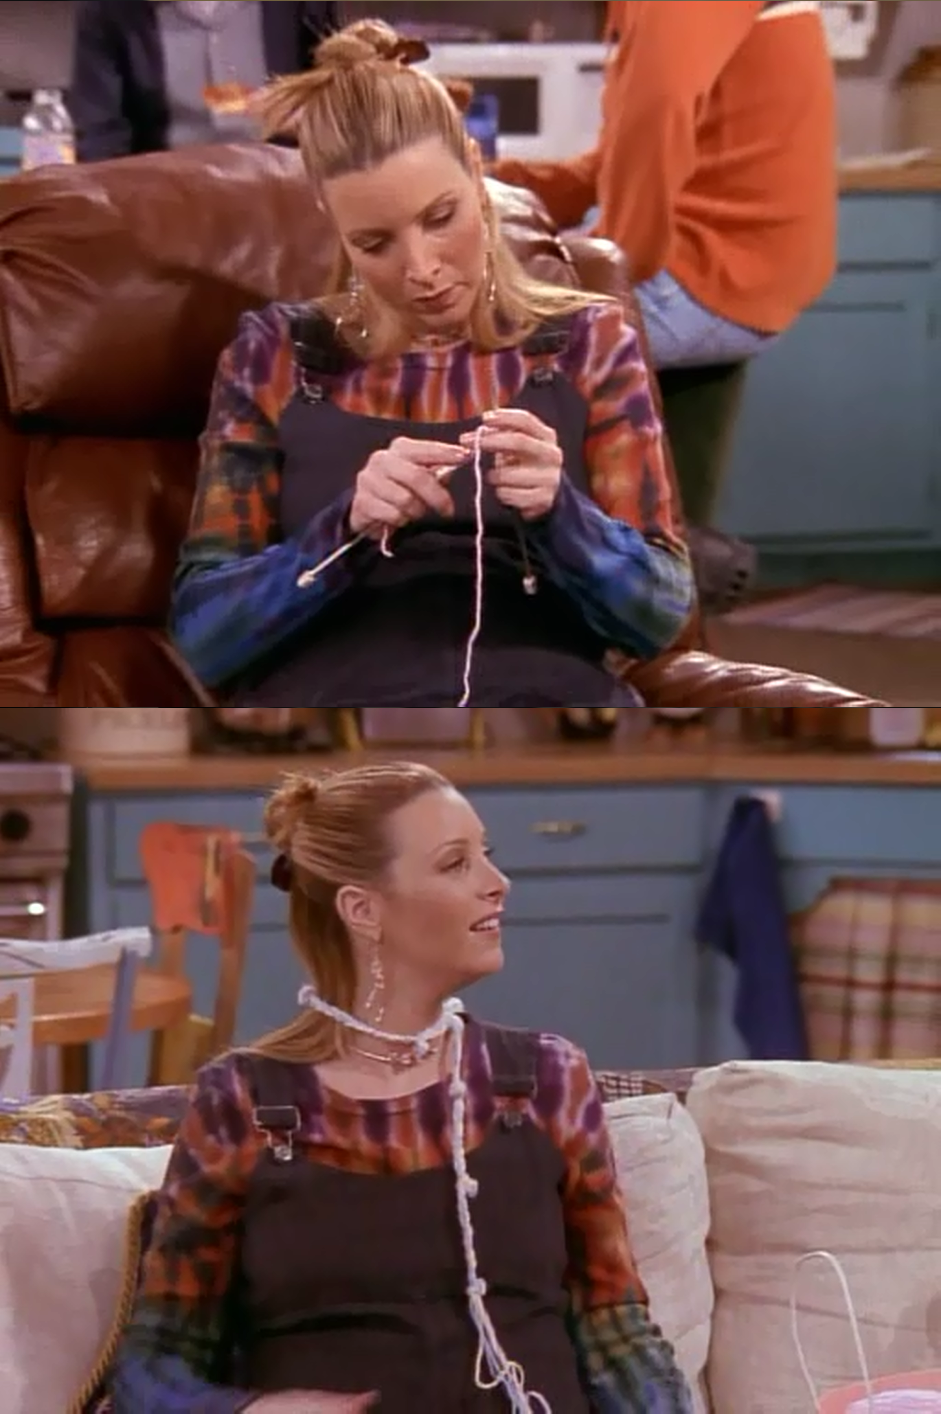 Phoebe attempts to knit. She doesn't really get the hang of it, but she seems pleased with the result.